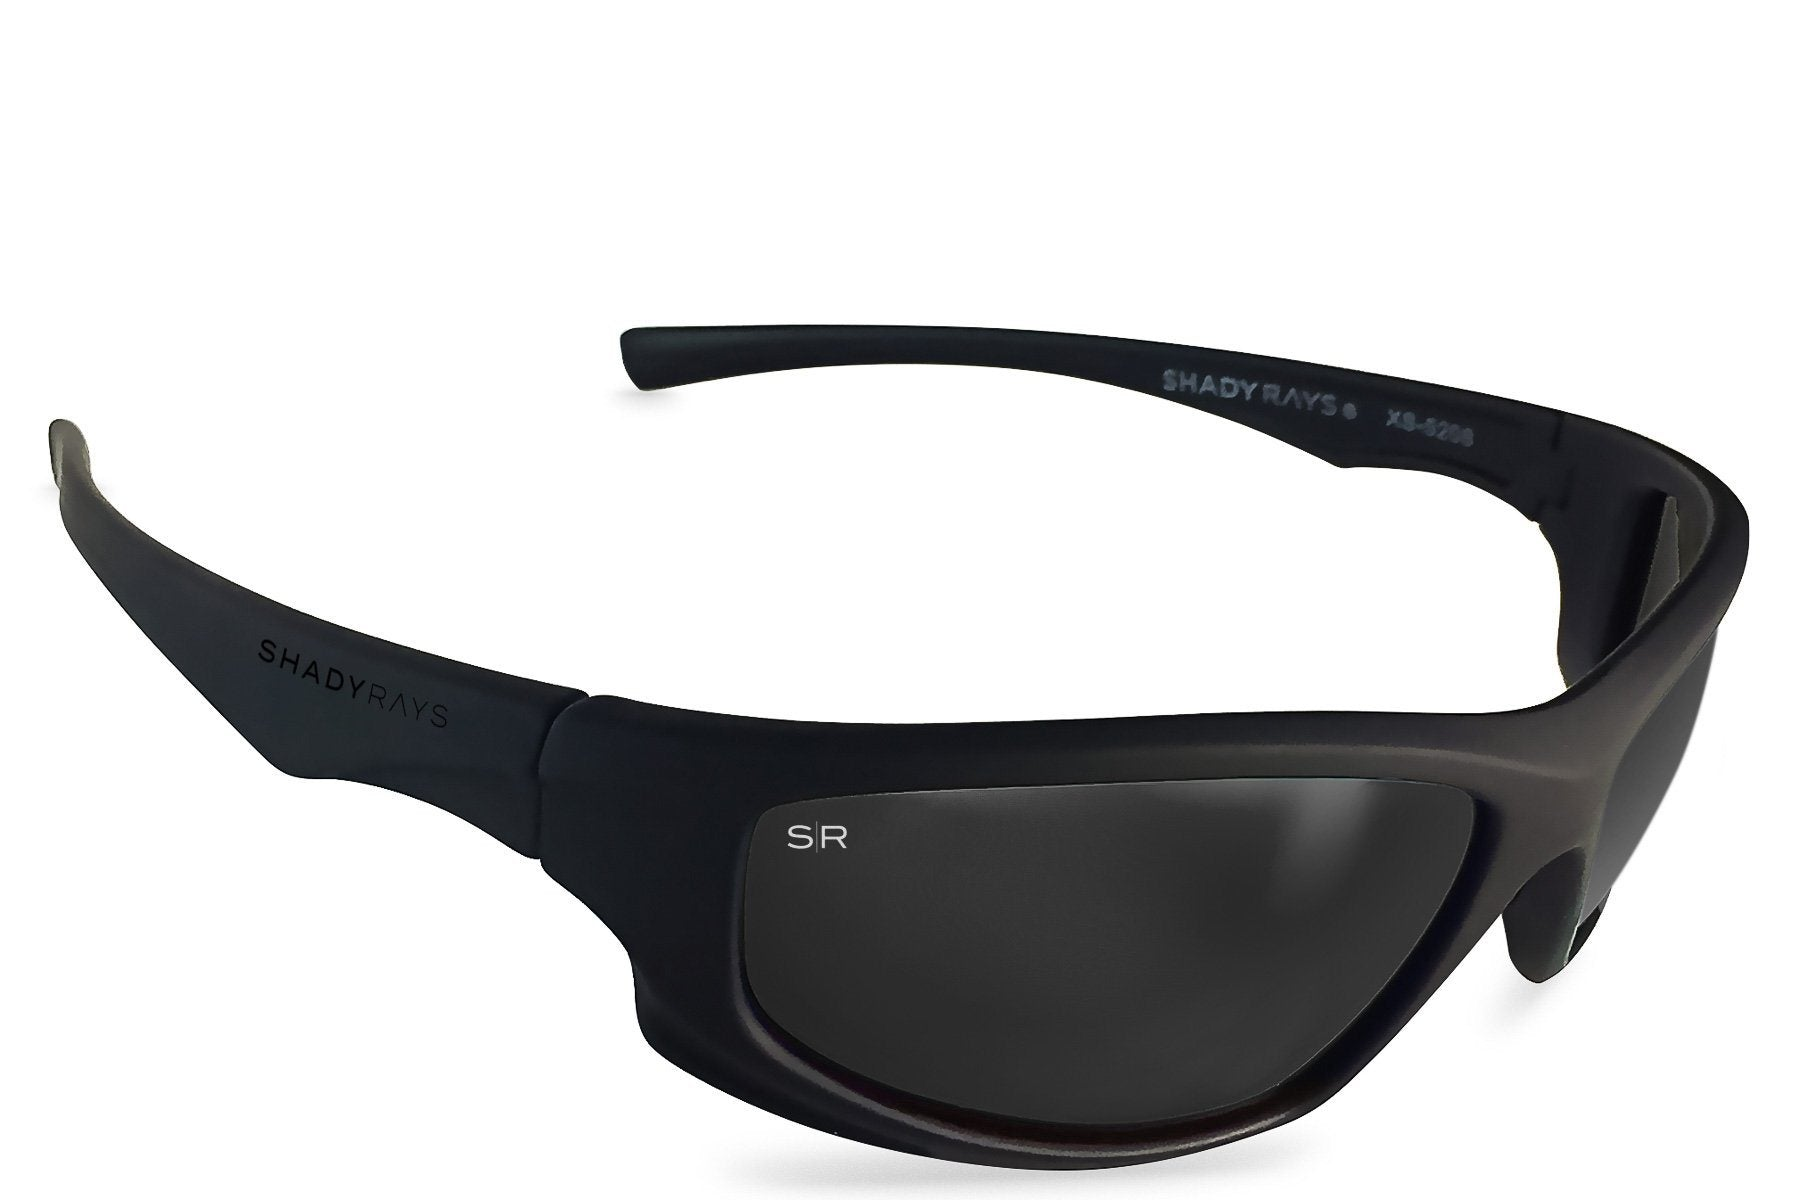 a394993dd6905 Shady Rays X Series - Blackout Polarized INCOGNITO Sunglasses ...